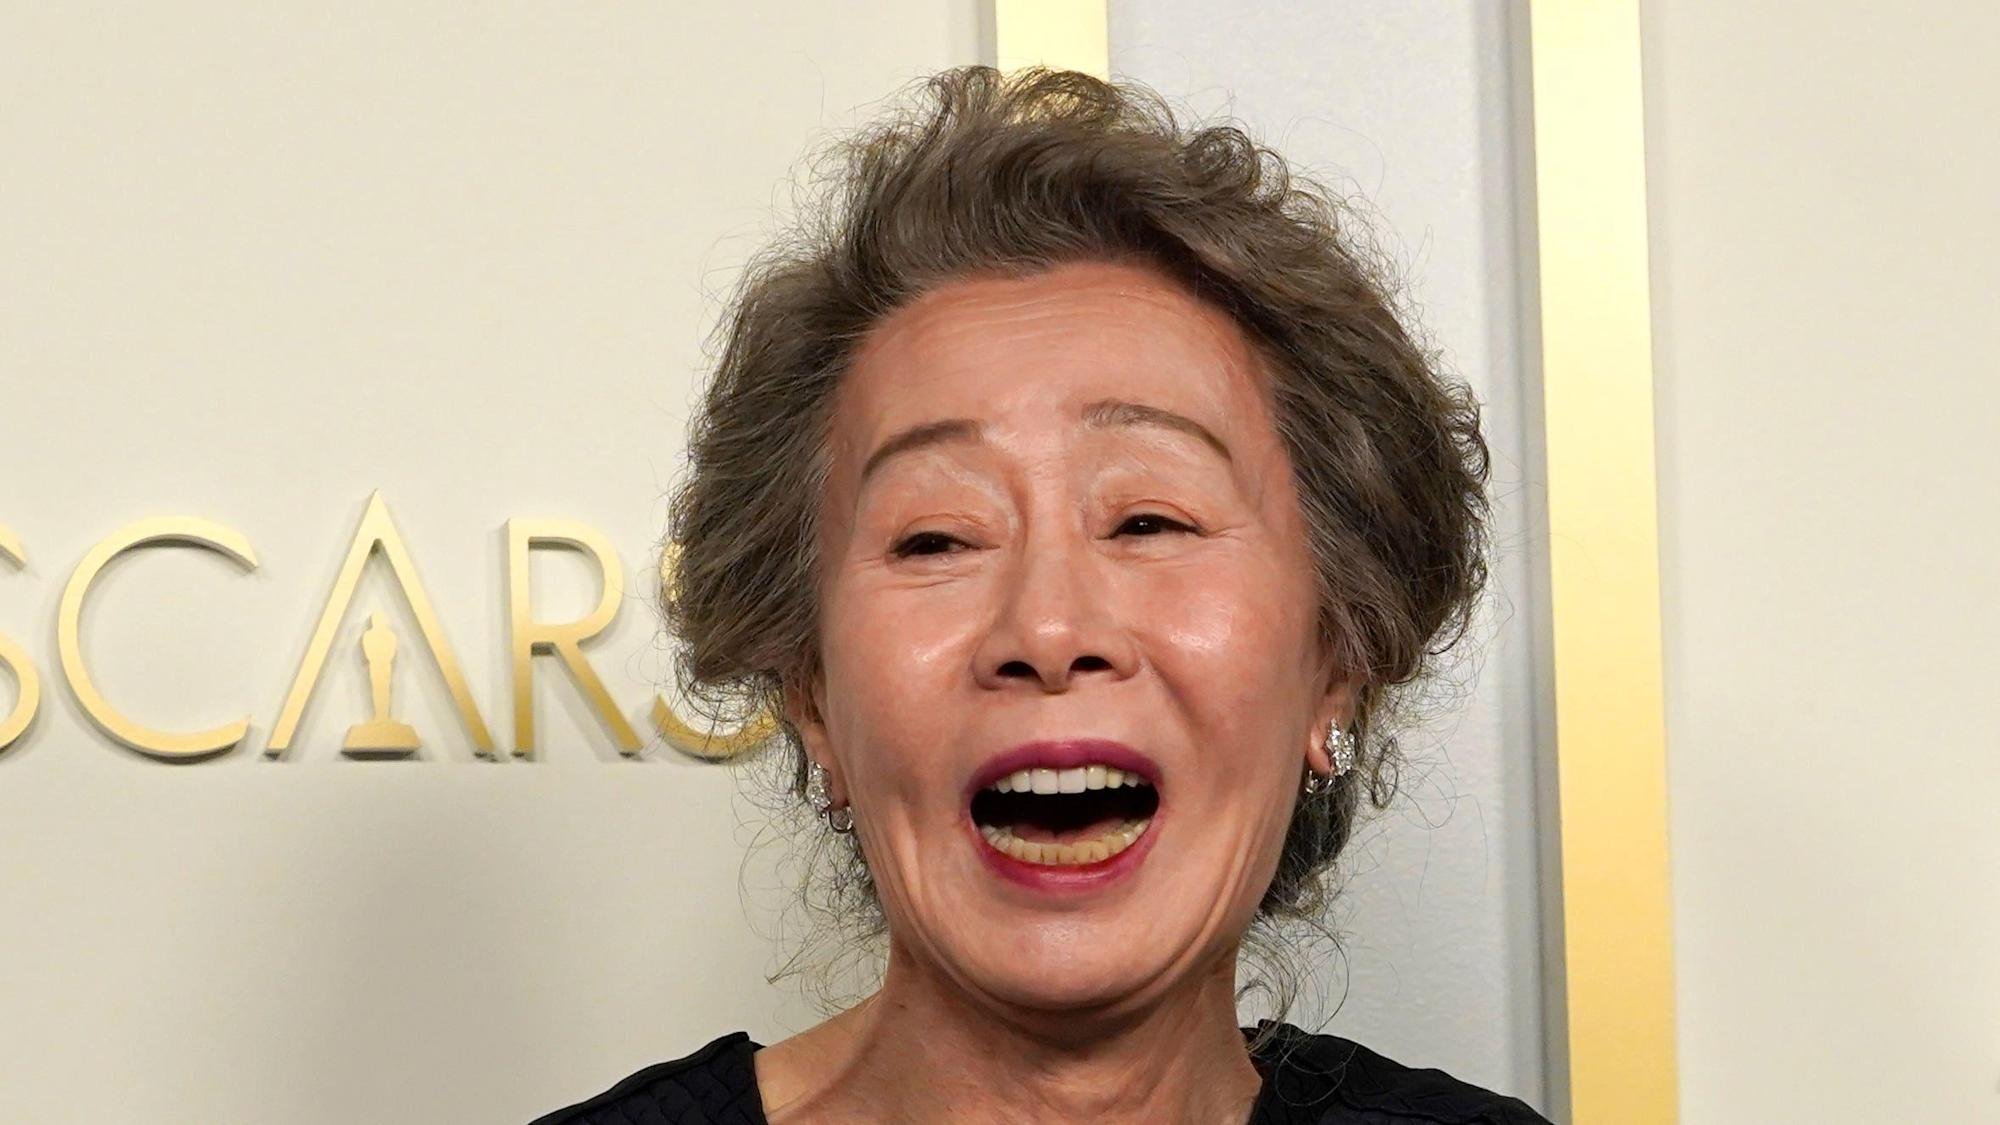 Minari star Yuh-Jung Youn makes history at the Oscars